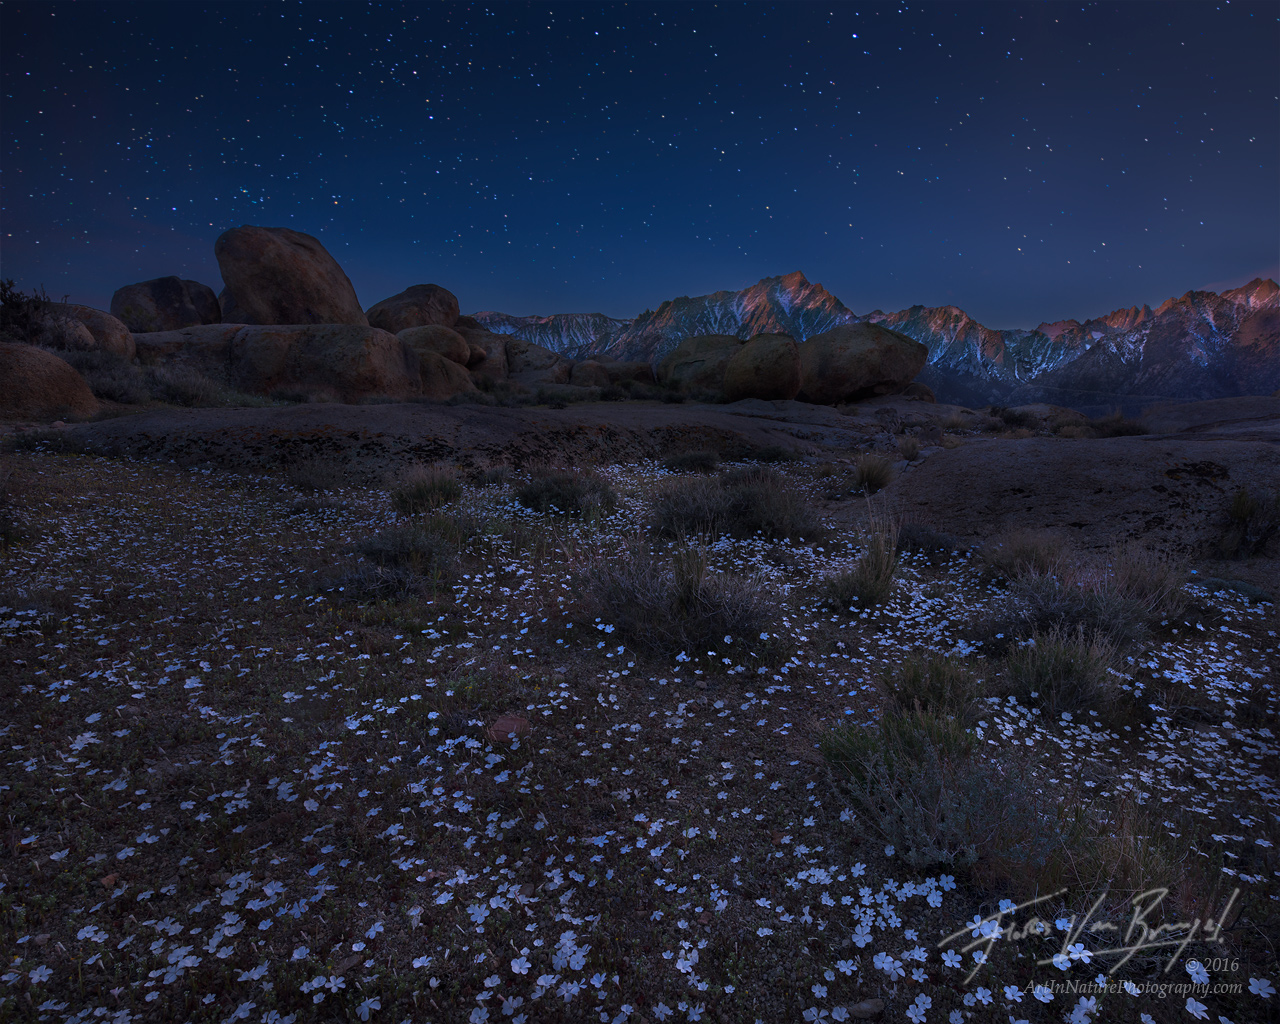 Flowers and Stars, Alabama Hills, California, photo